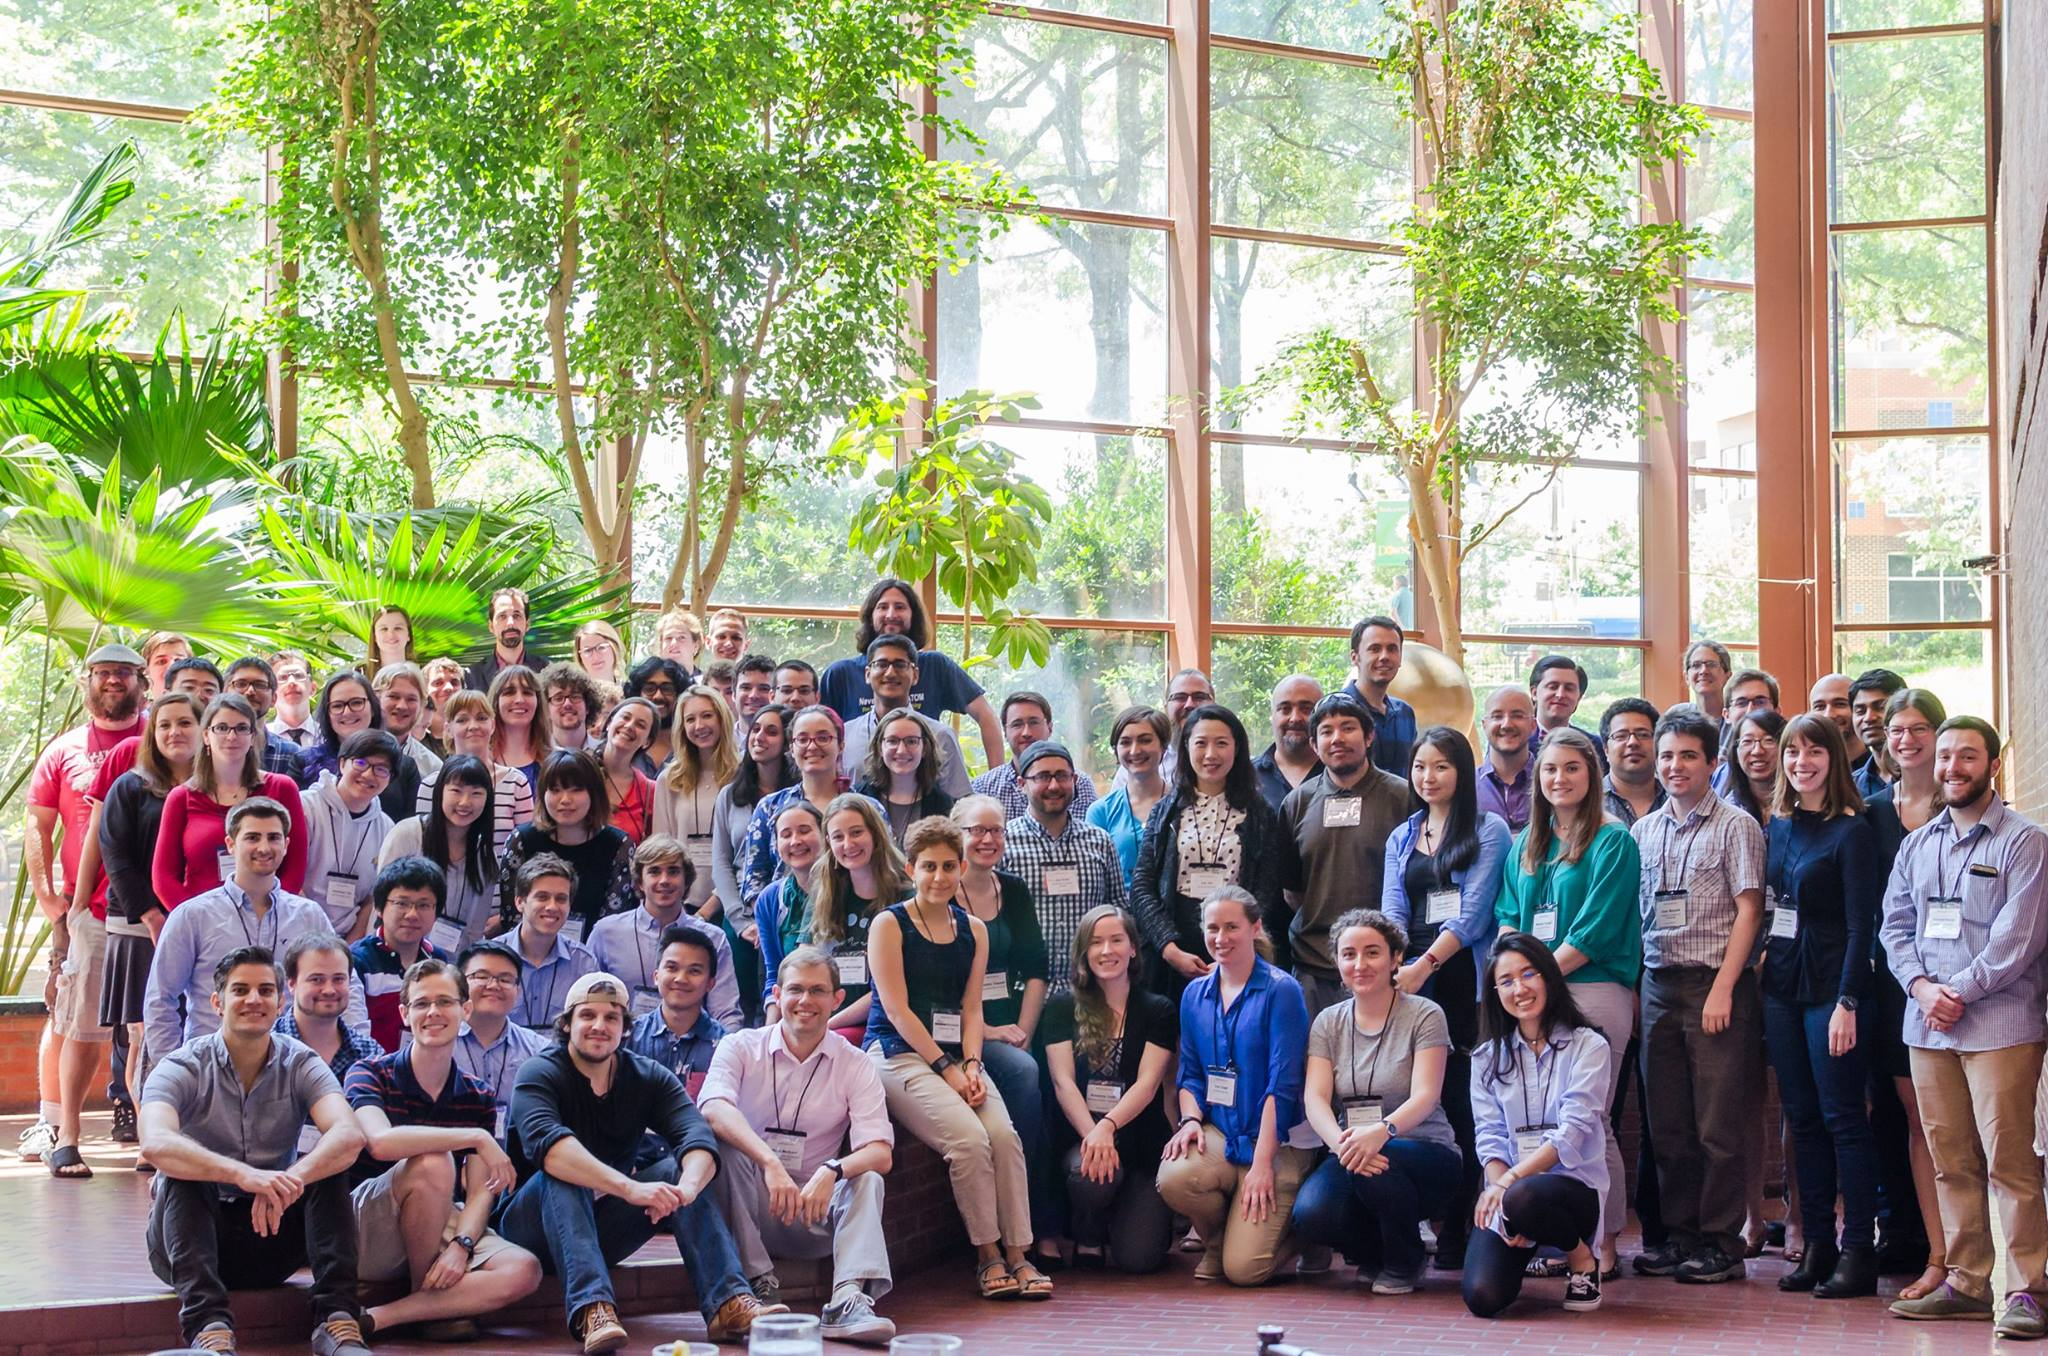 Participants at the Astrobiology Graduate Conference (AbGradCon) 2017 held in Charlottesville, VA. Image credit: None